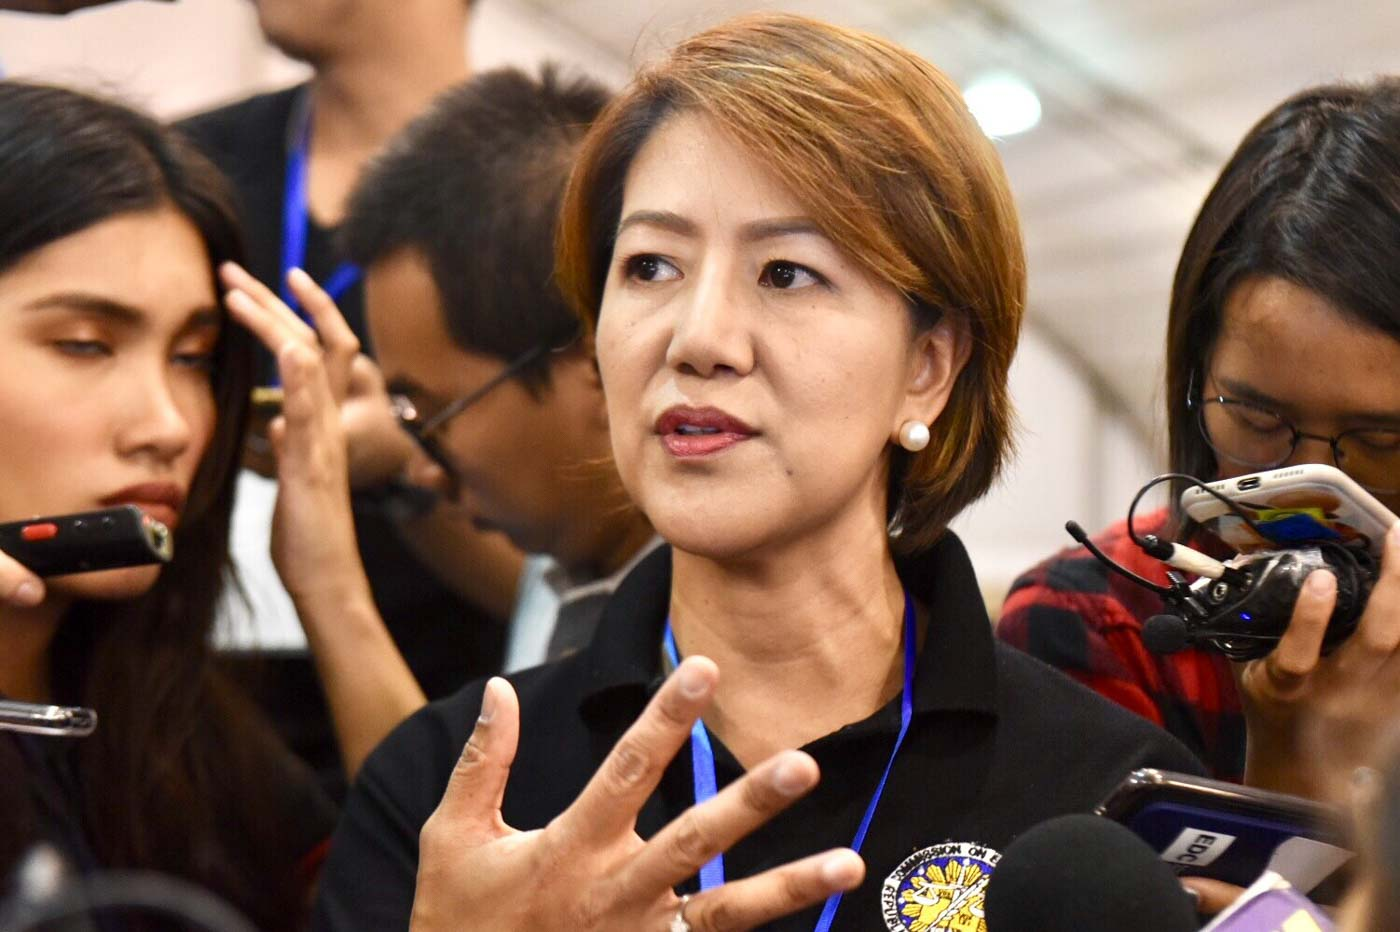 POLL BODY. Commission on Elections Director Frances Arabe in an ambush interview at the national canvassing of votes of senatorial and party lists on May 19, 2019. Photo by Angie de Silva/Rappler